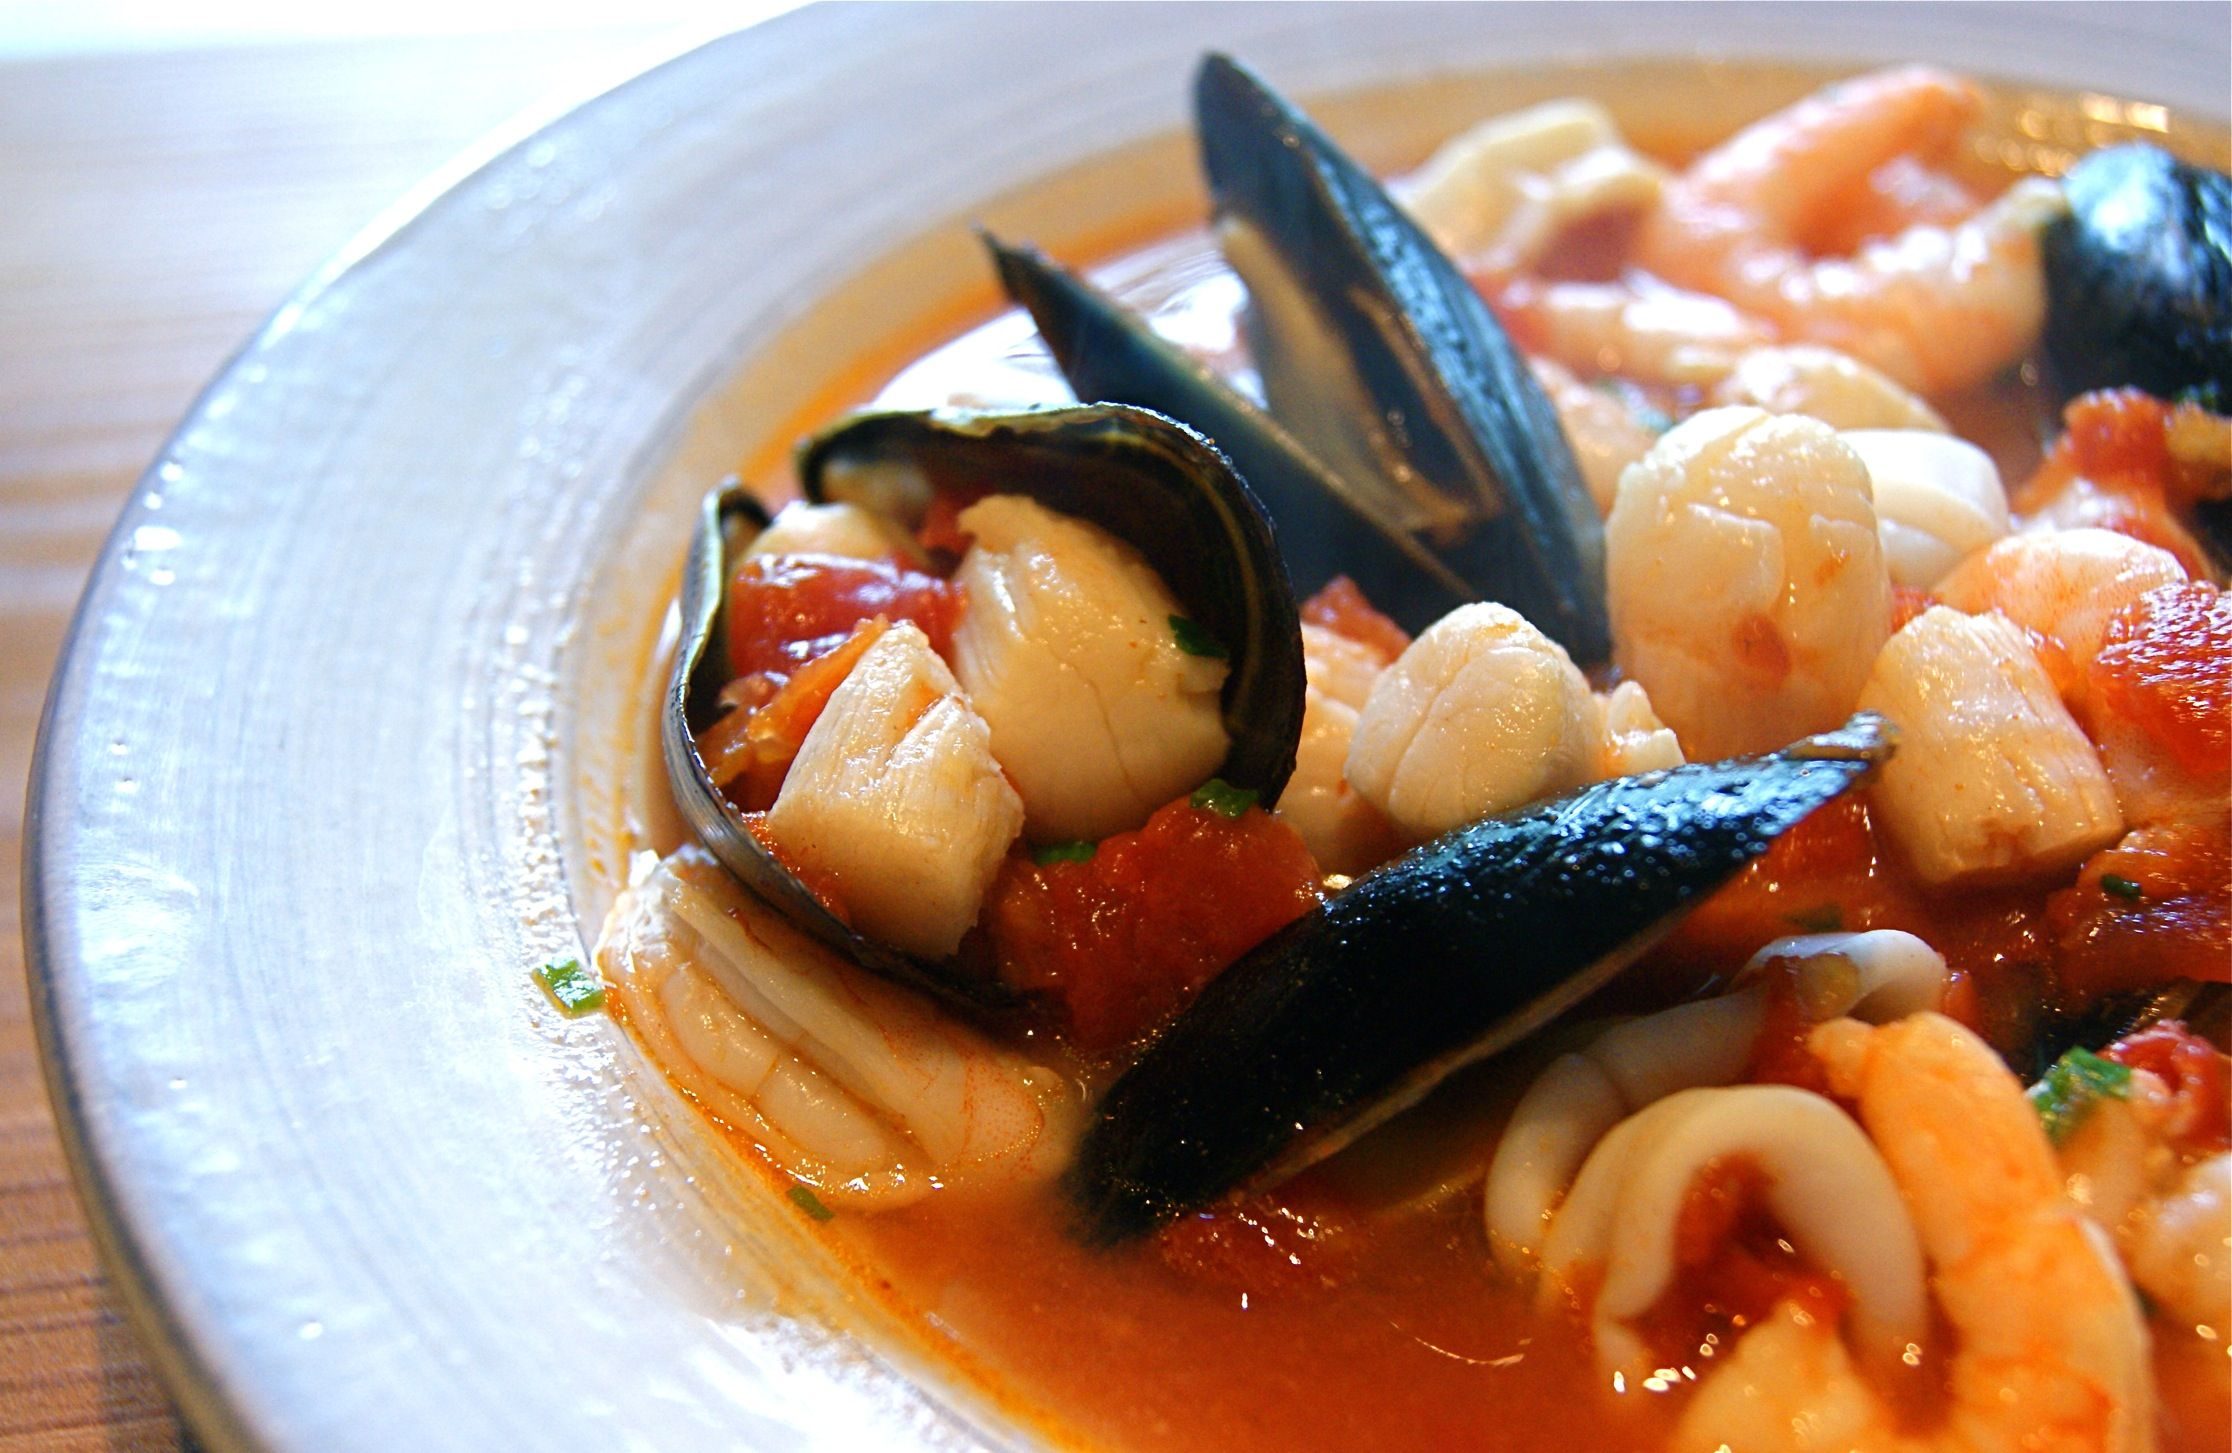 I make a version of this using a bag of frozen seafood mix - delicious and so simple!